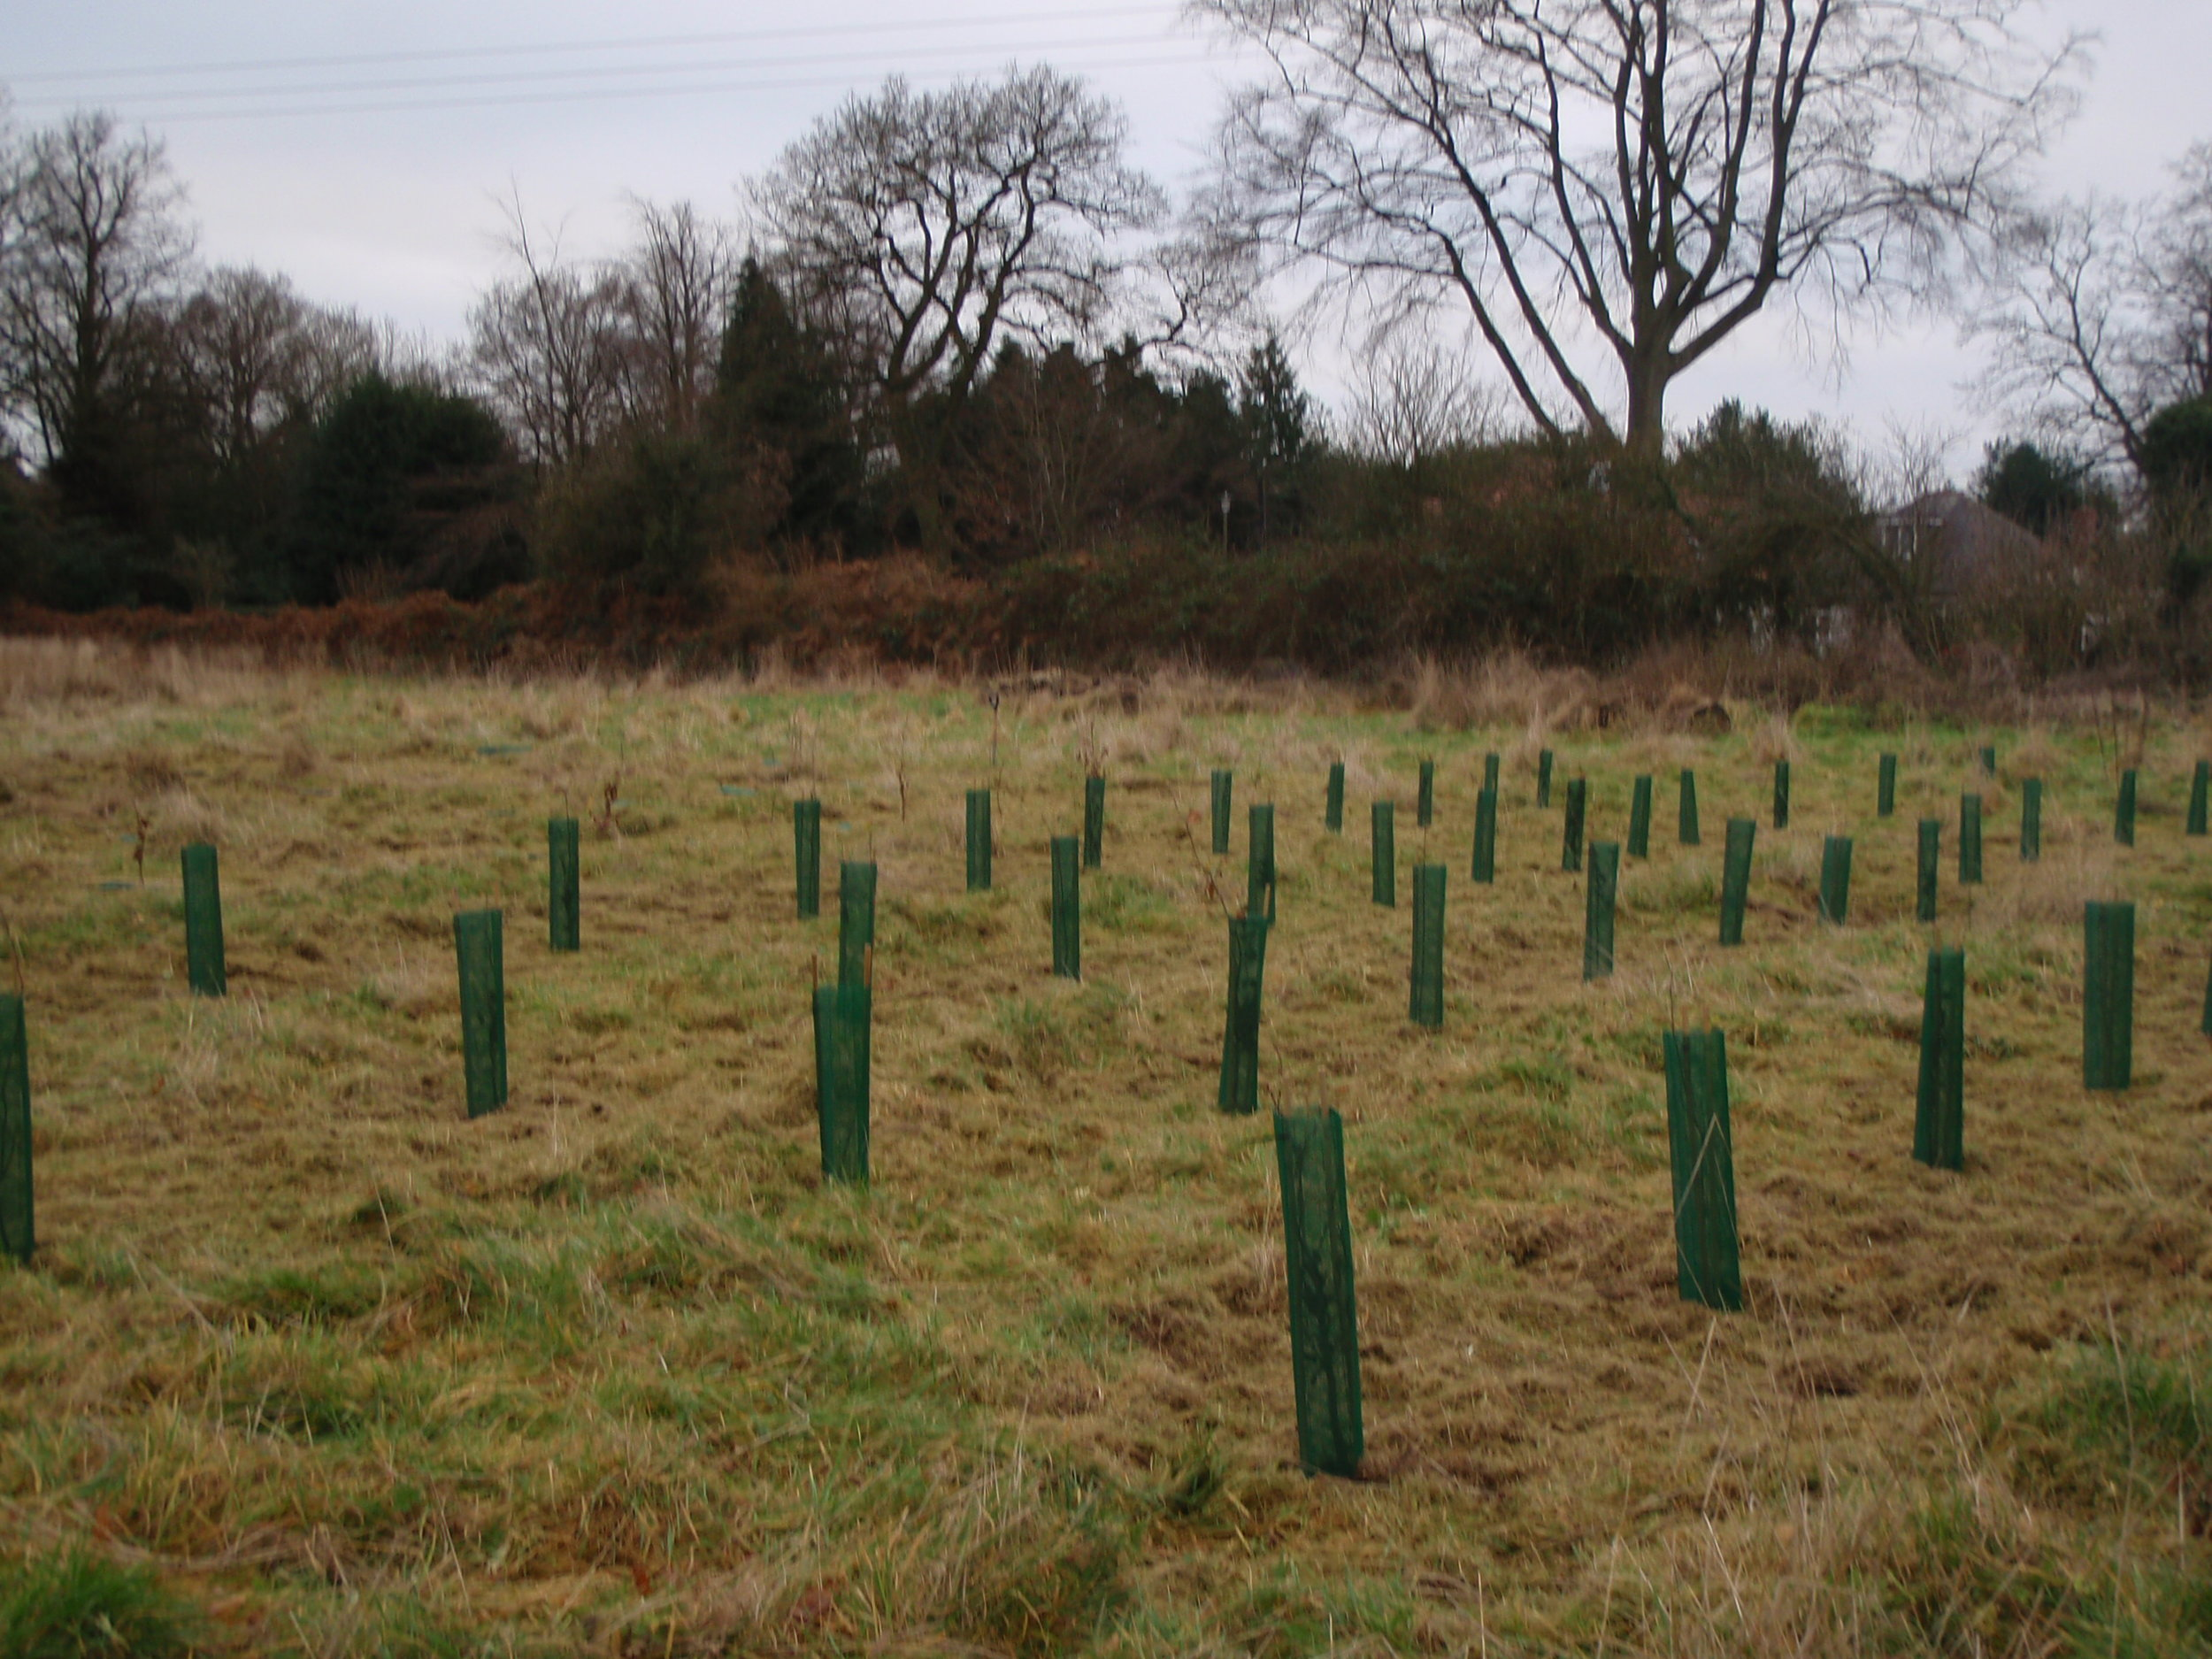 Tree planting - Clent, Worcestershire